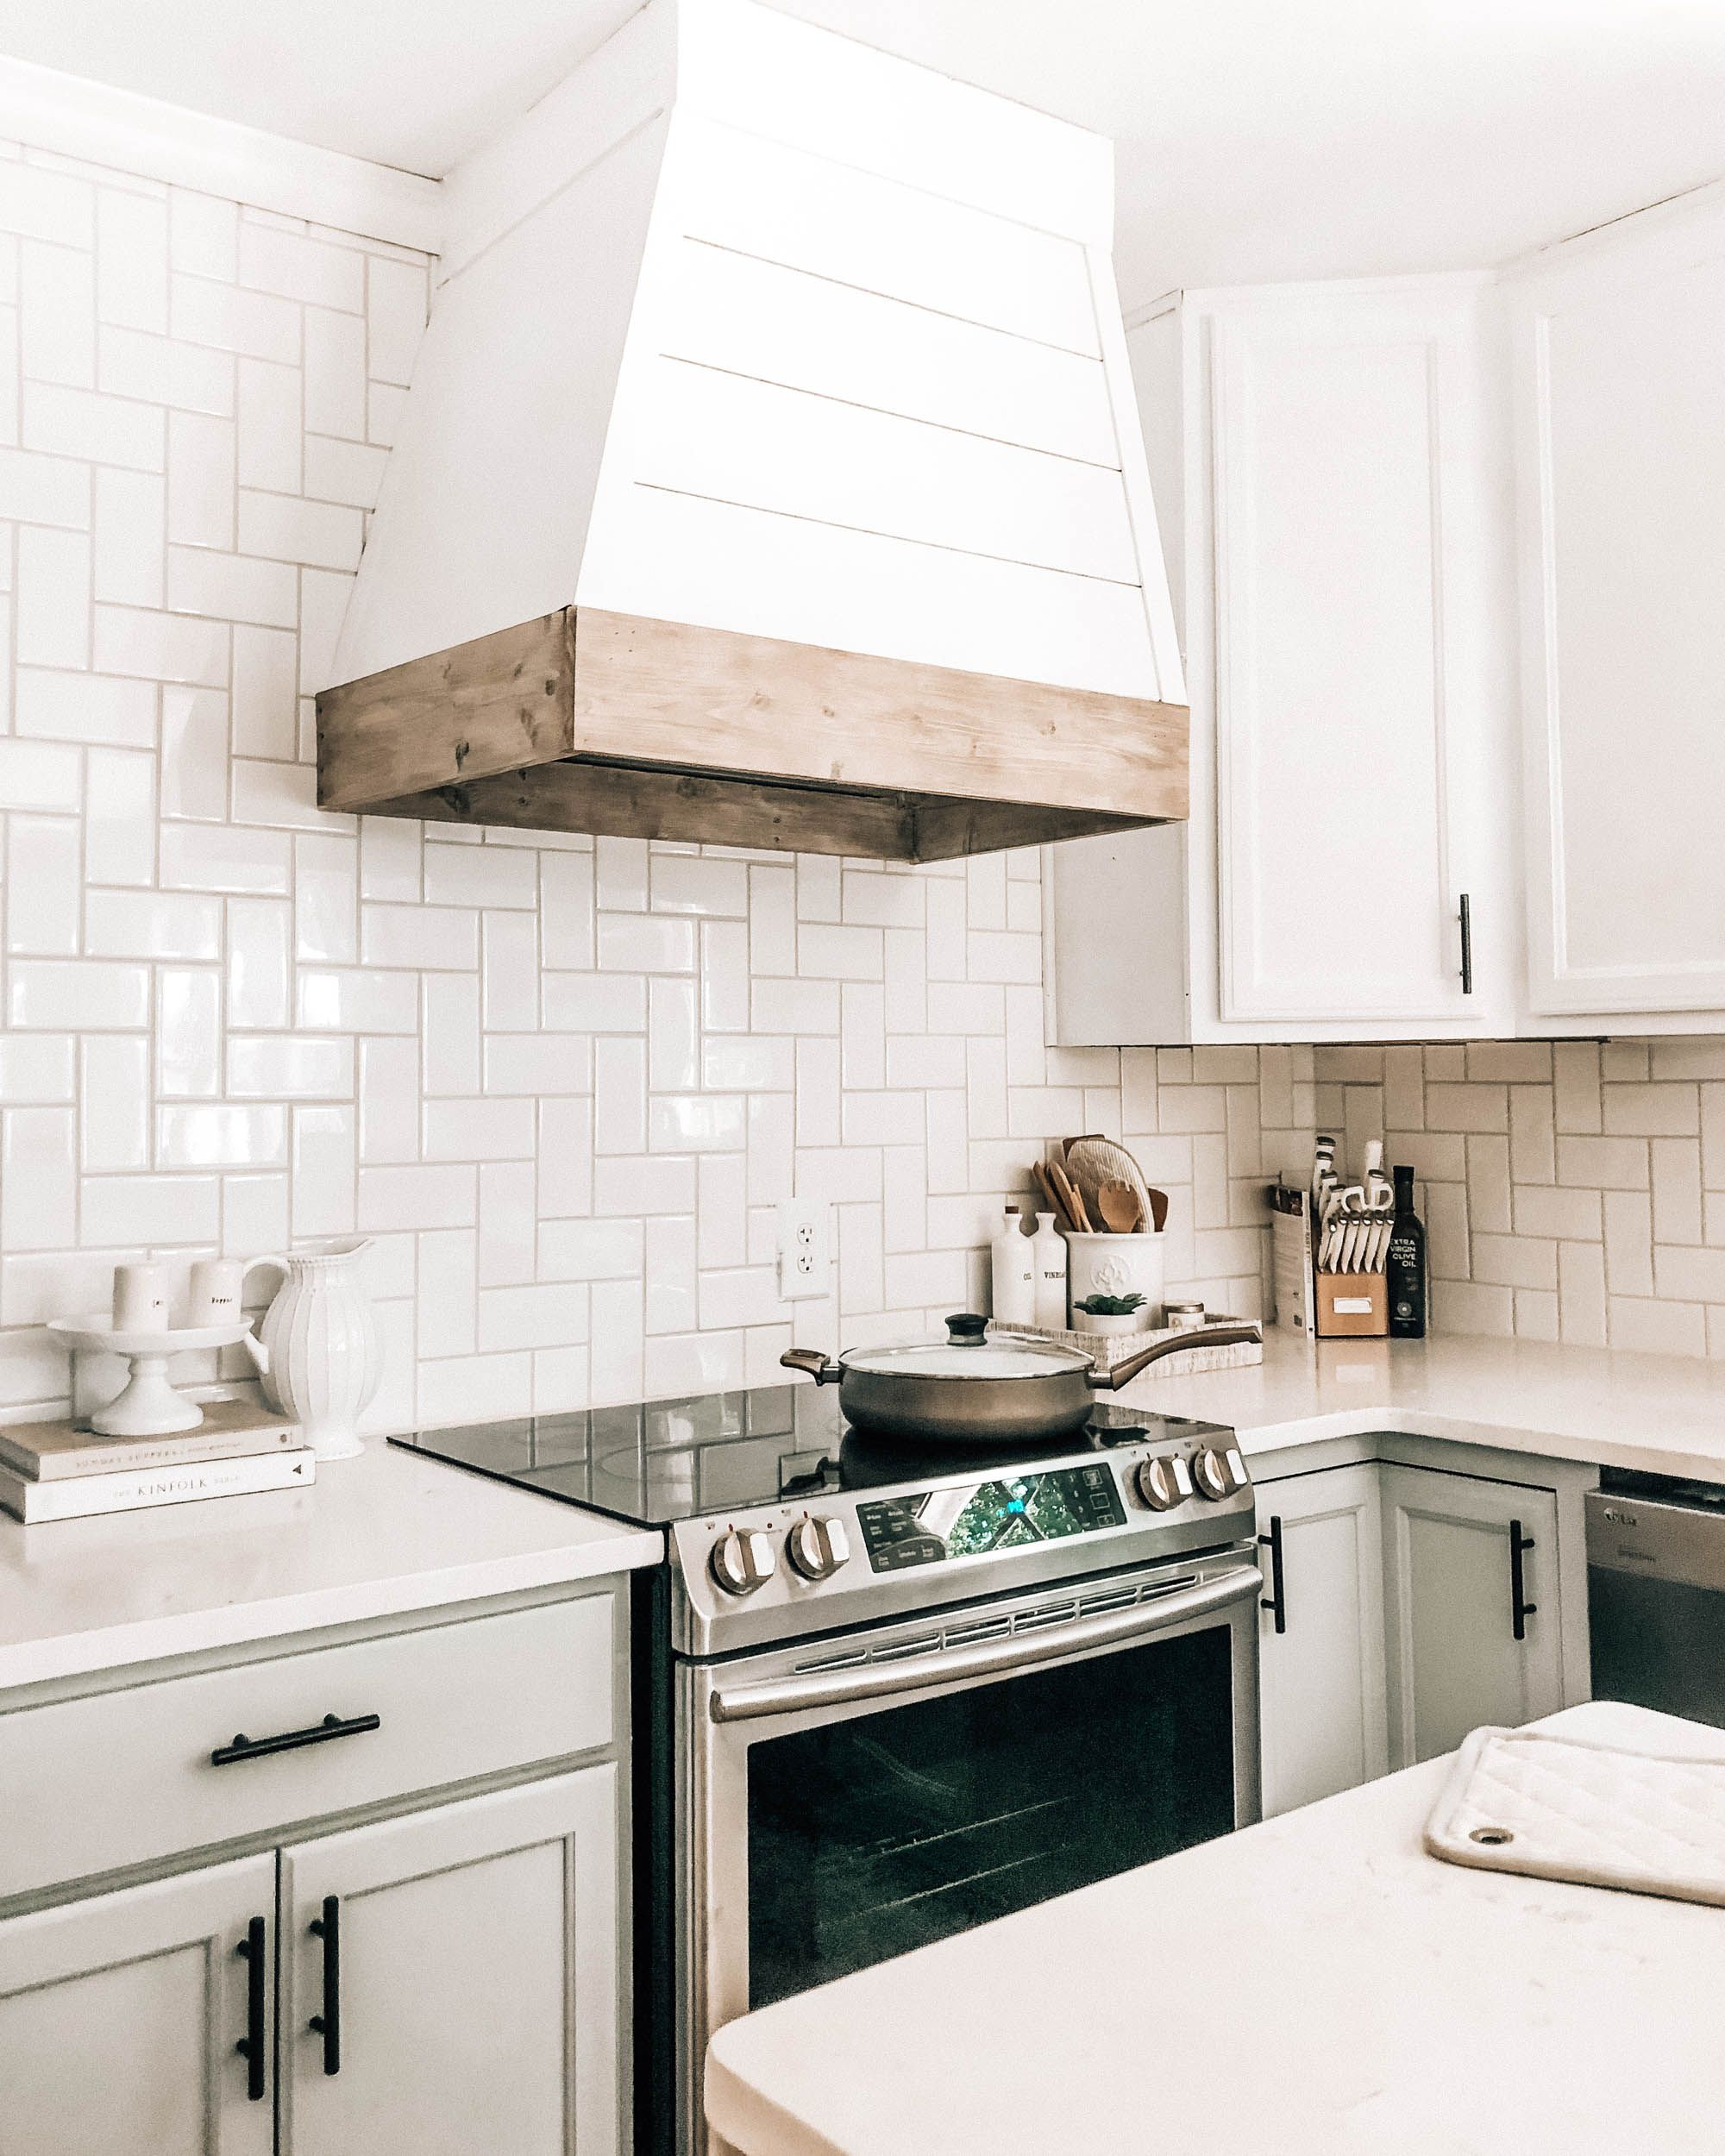 Painting Kitchen Cabinets Yourself How To Paint Subway Tile Kitchen Countertop Decor Sh Kitchen Countertop Decor Painting Kitchen Cabinets Kitchen Cabinets